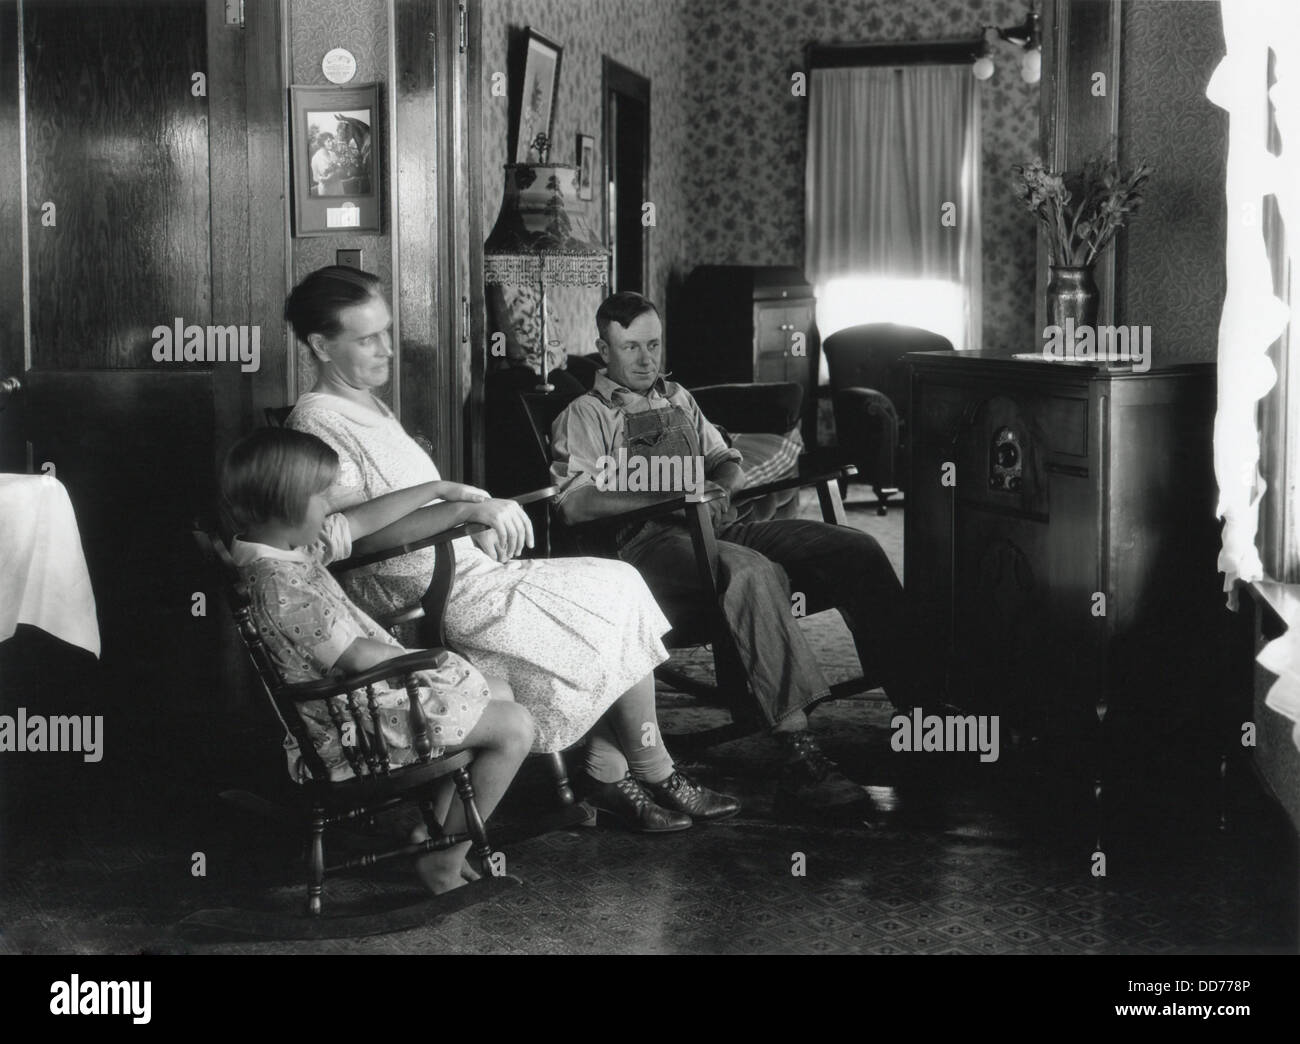 Farm family listening to their radio, Michigan, Aug. 15, 1930. Photo by George Ackerman. (BSLOC_2013_8_85) - Stock Image